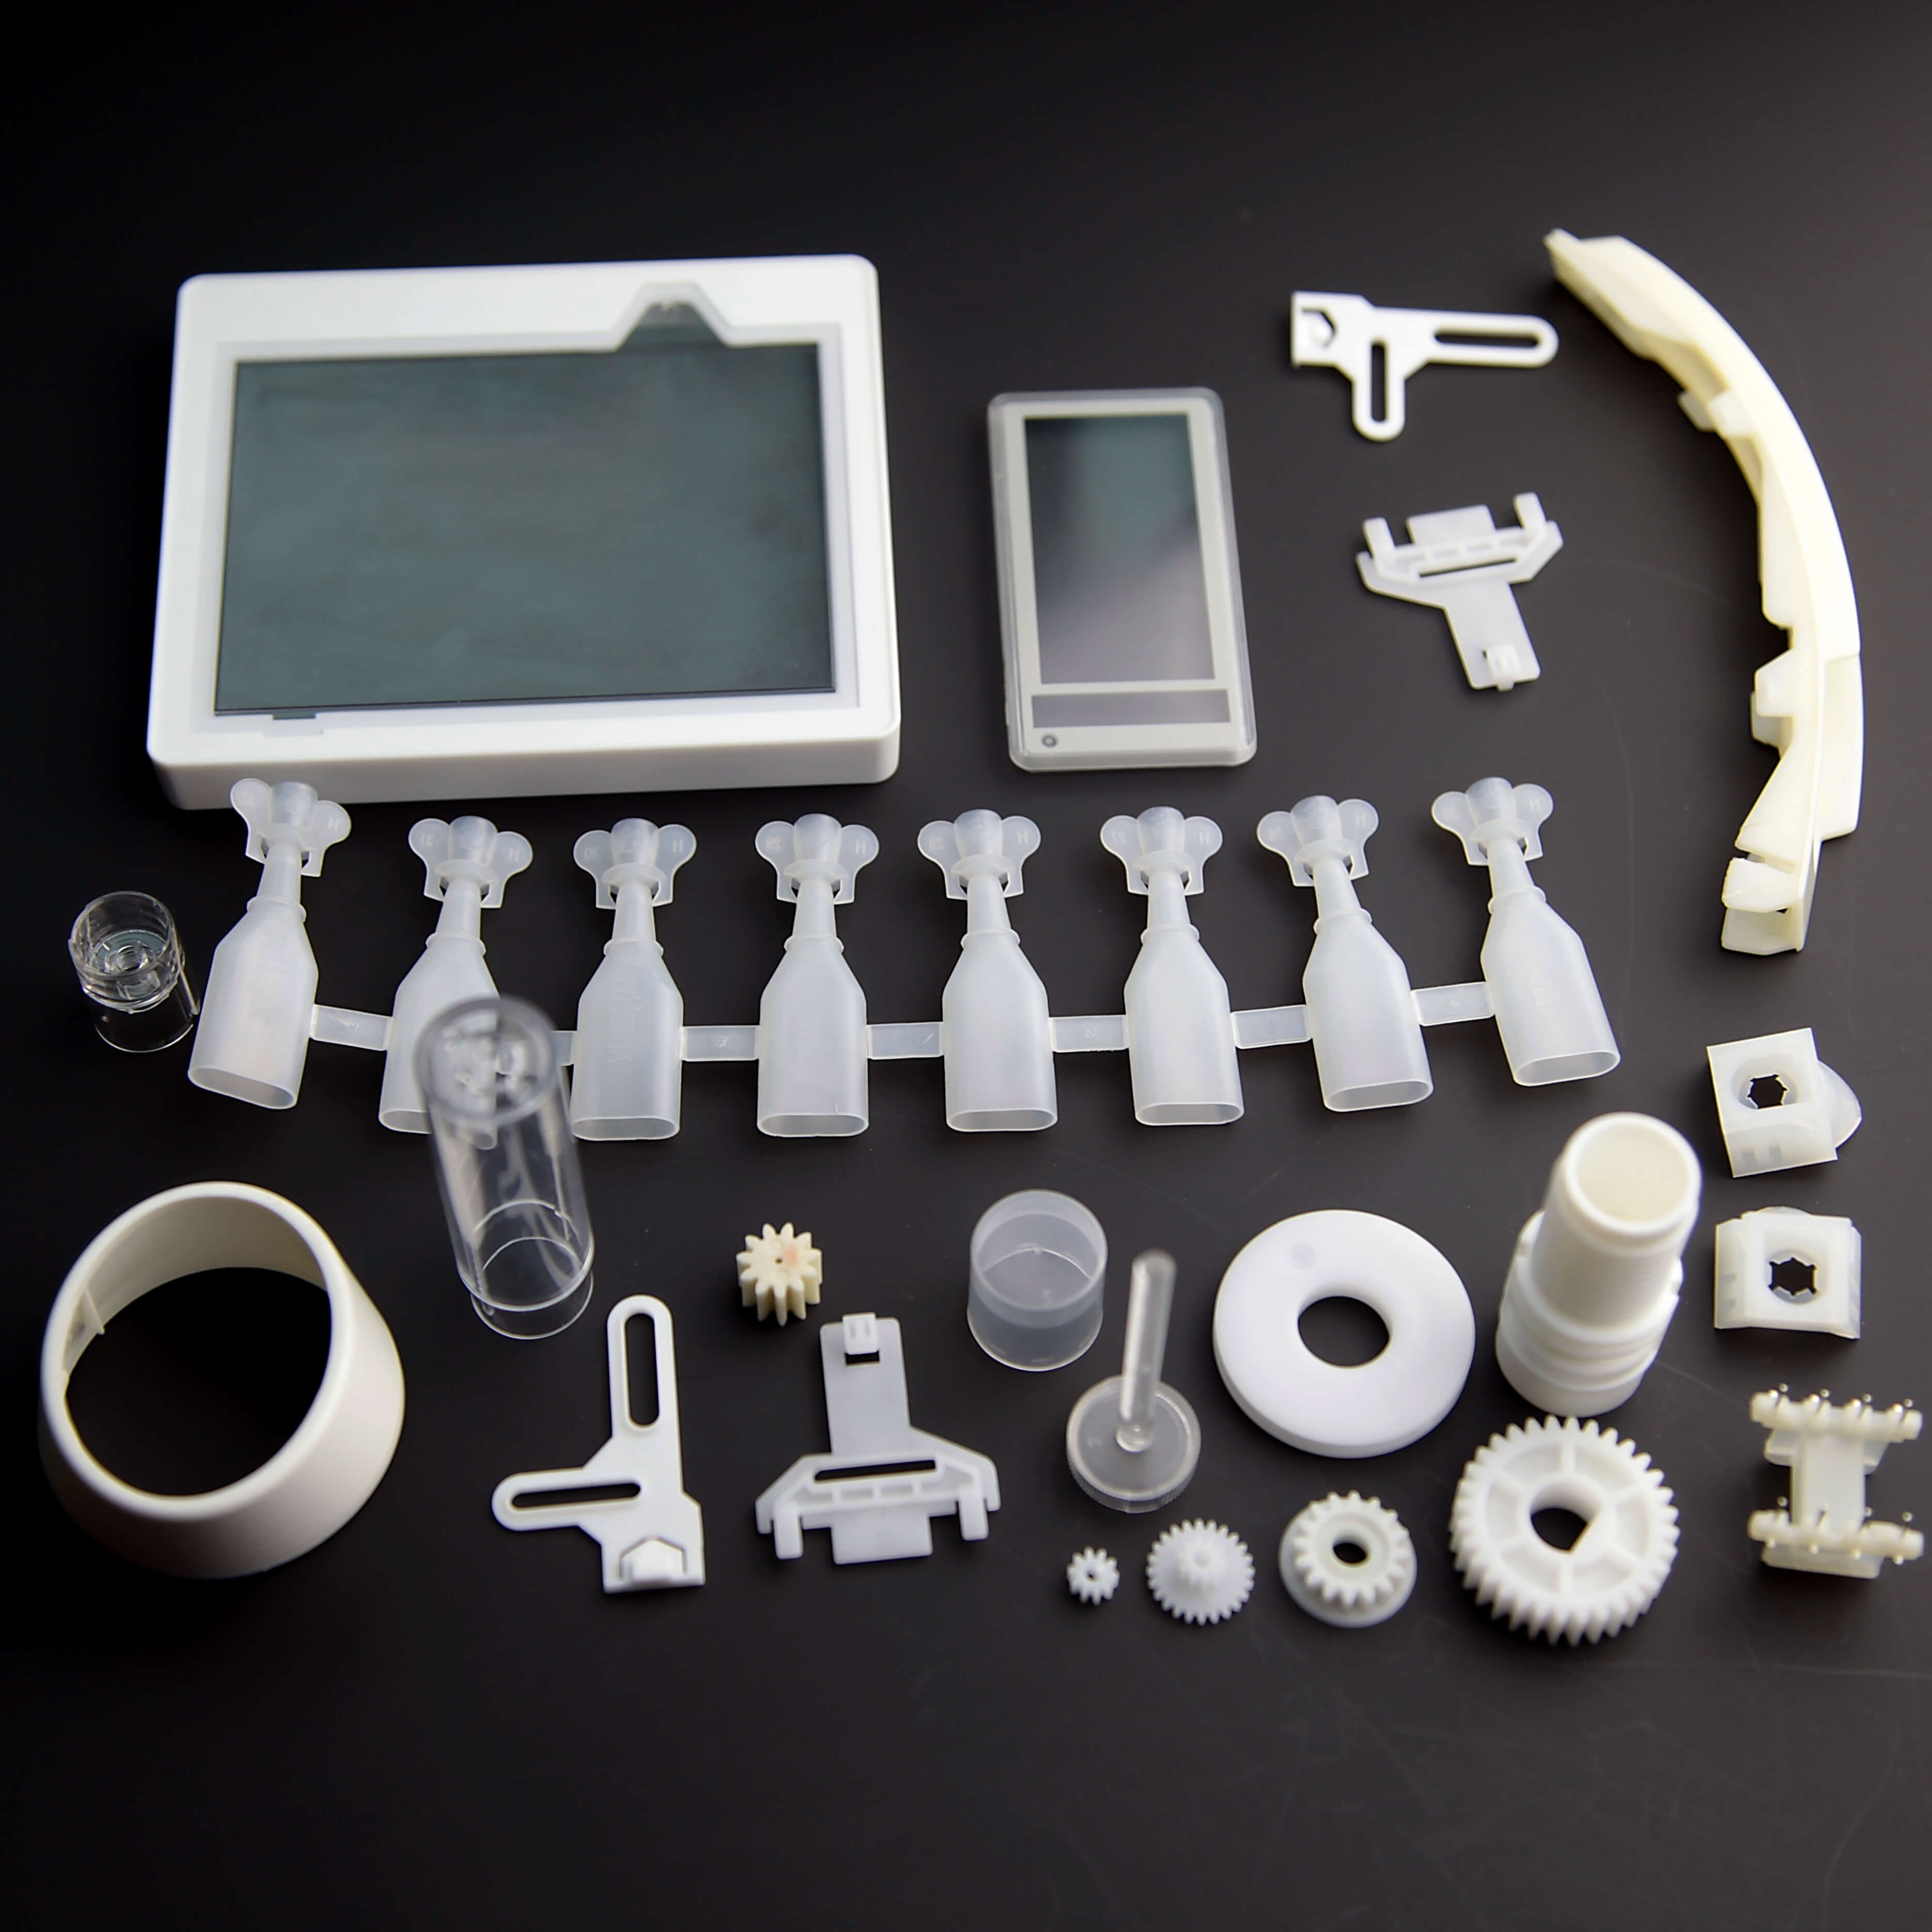 Mass-production-of-plastic-injected-parts.jpg